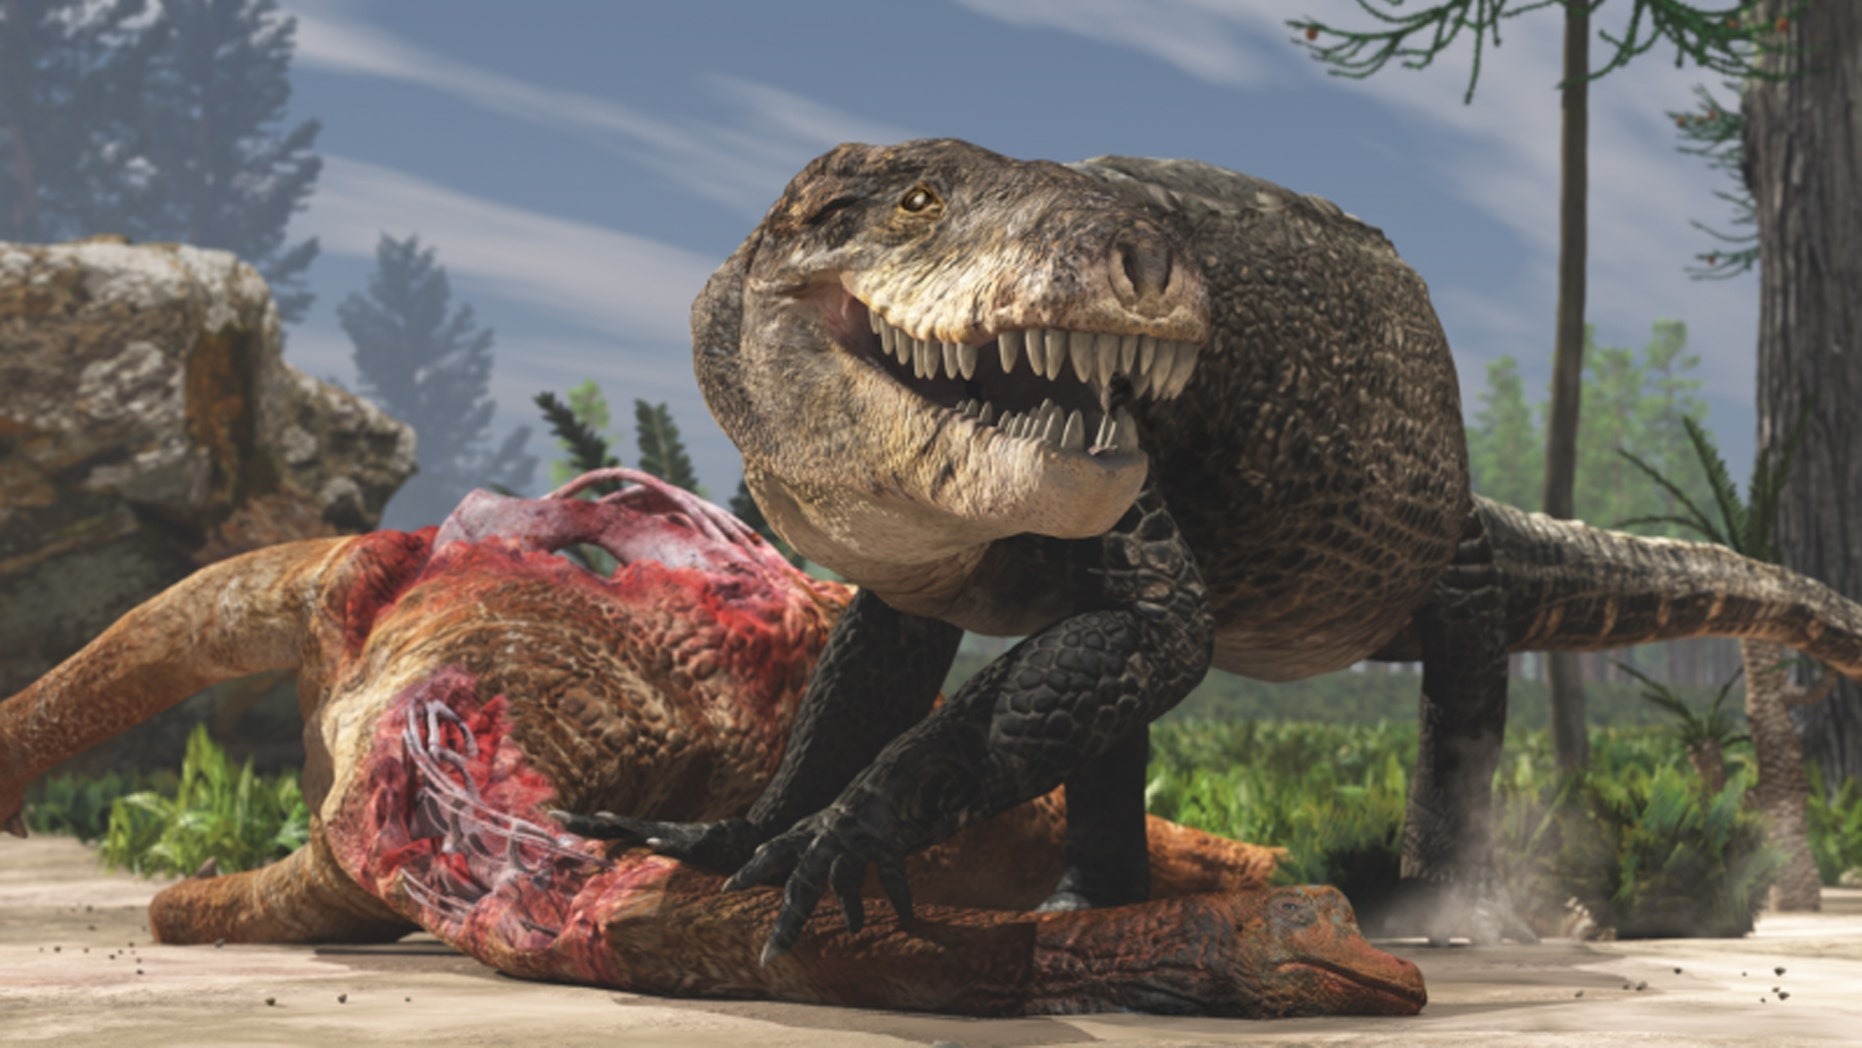 A paleoartistic restoration of Razanandrongobe sakalavae scavenging on a sauropod carcass in the Middle Jurassic of Madagascar. Unlike extant crocodilians, this terrestrial predator had a deep skull and walked on erect limbs. Credit: Fabio Manucci